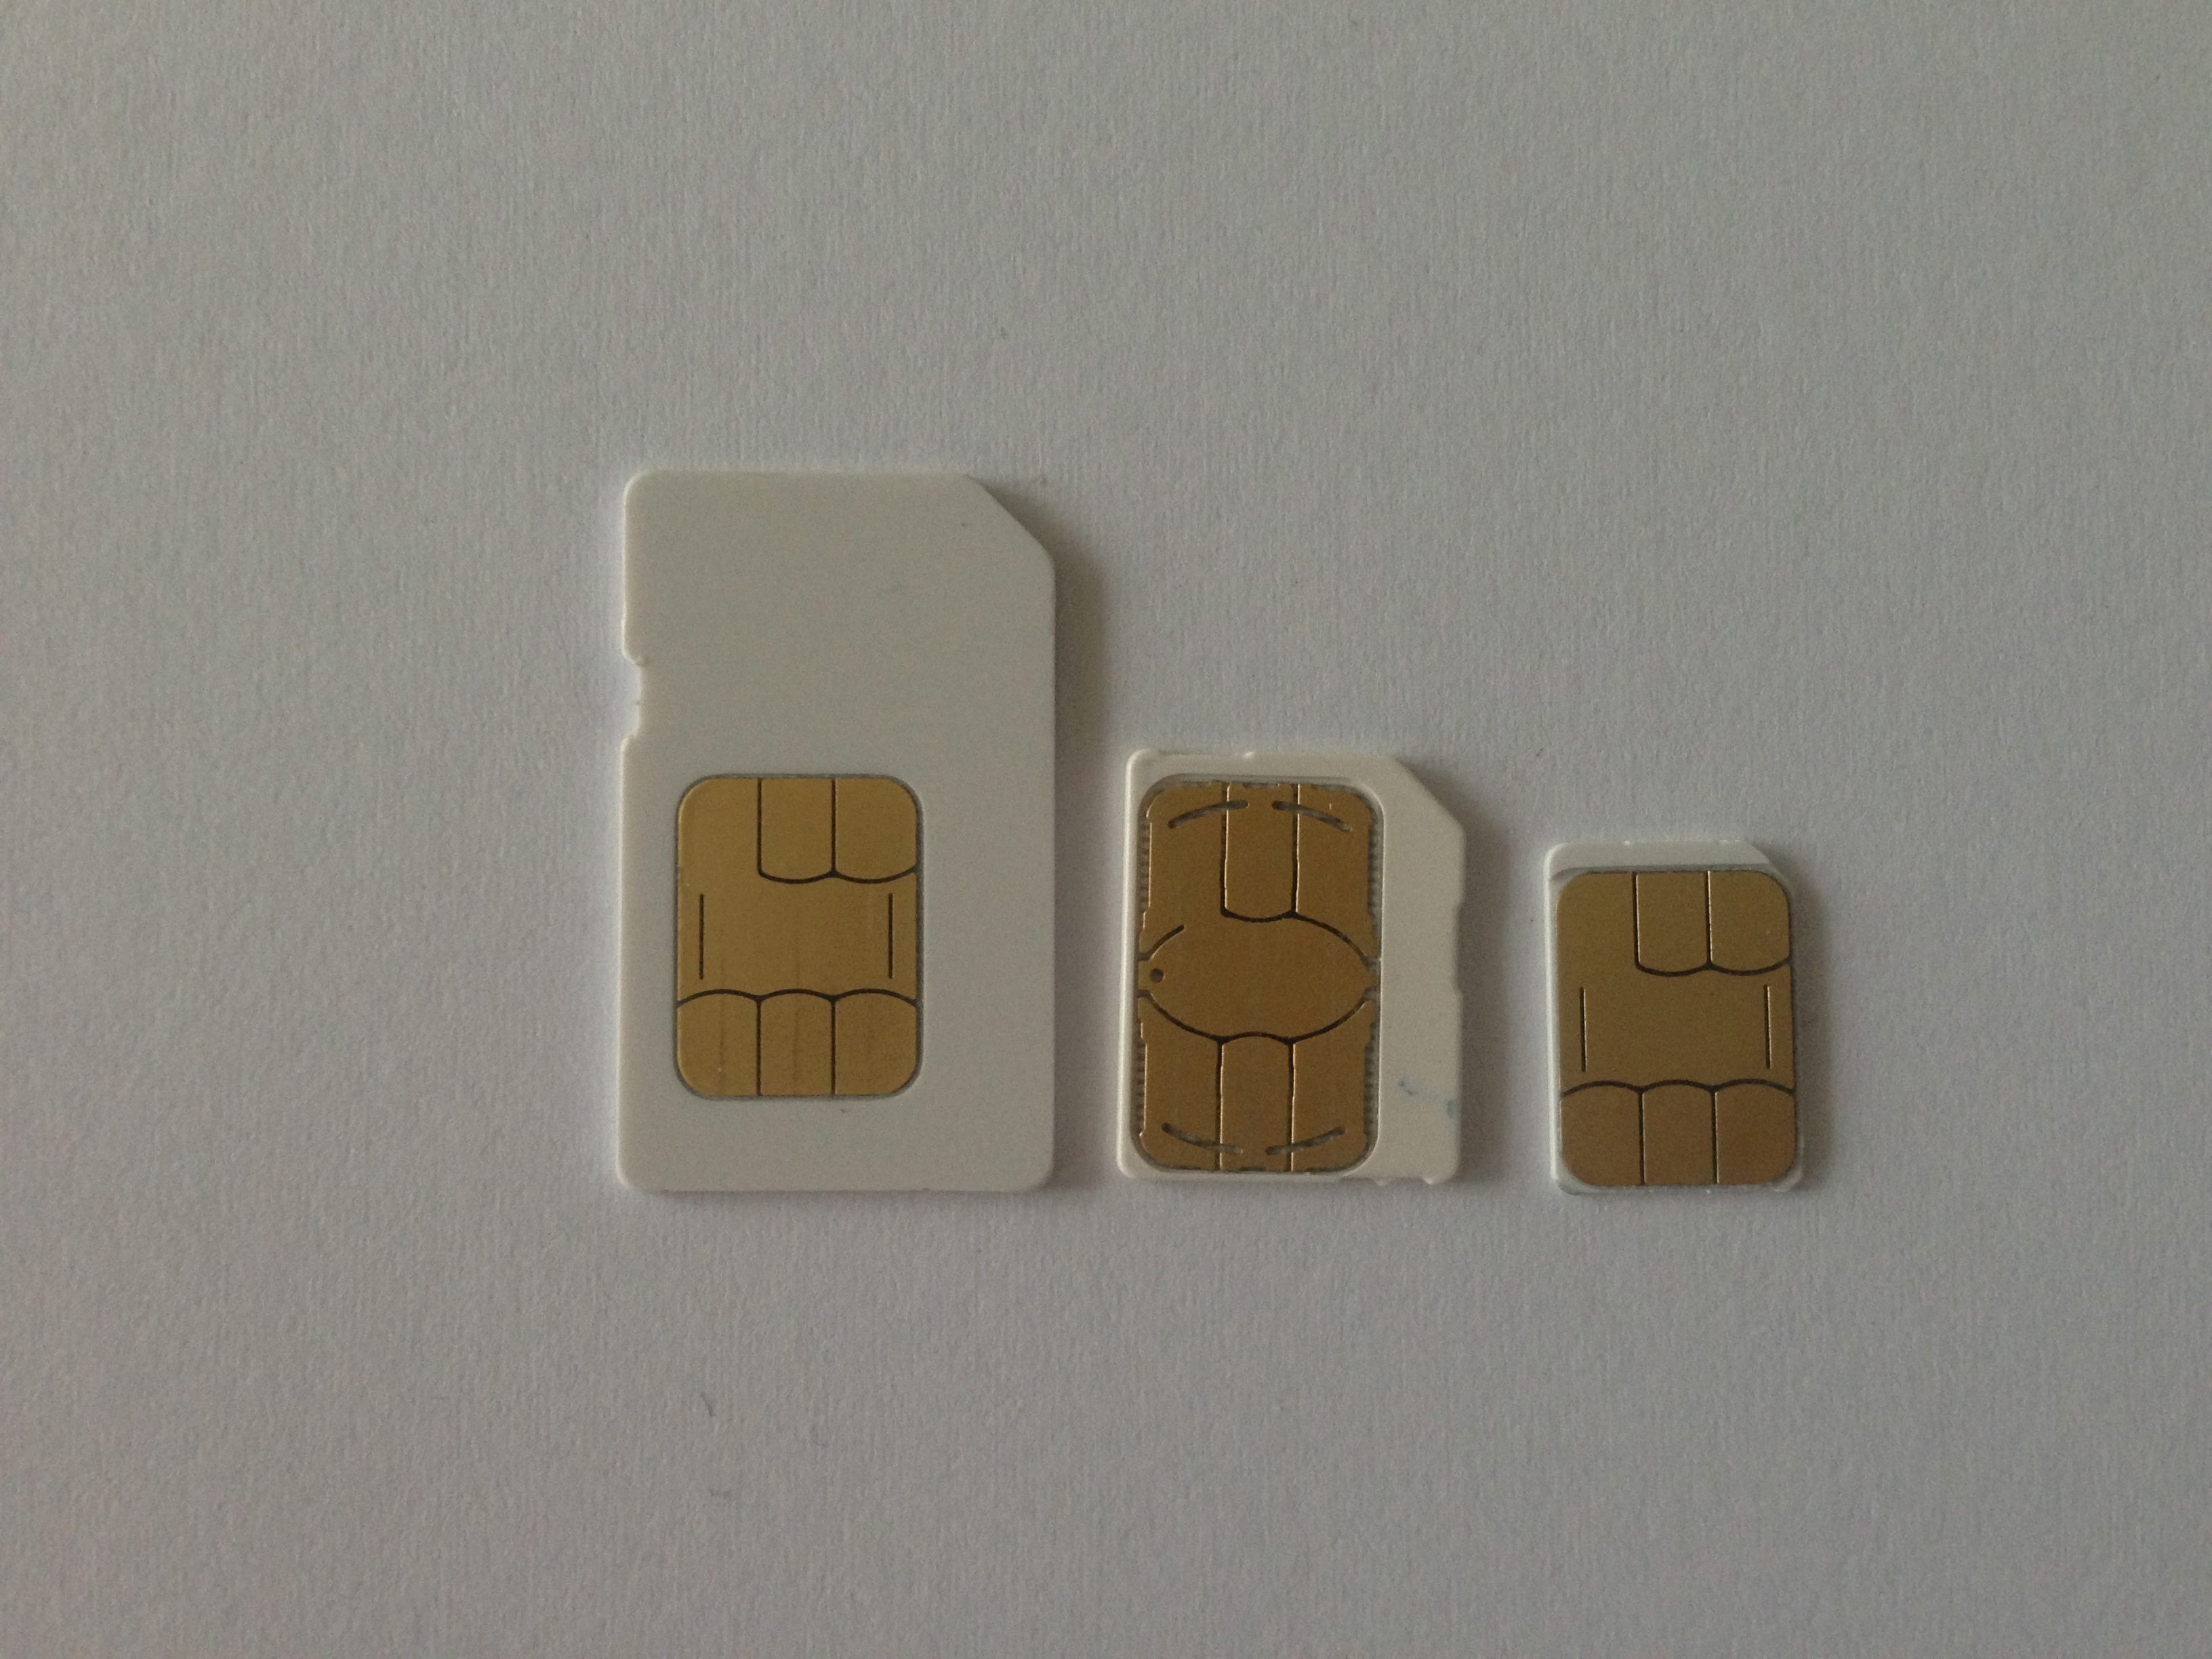 Cartes Sim Iphone